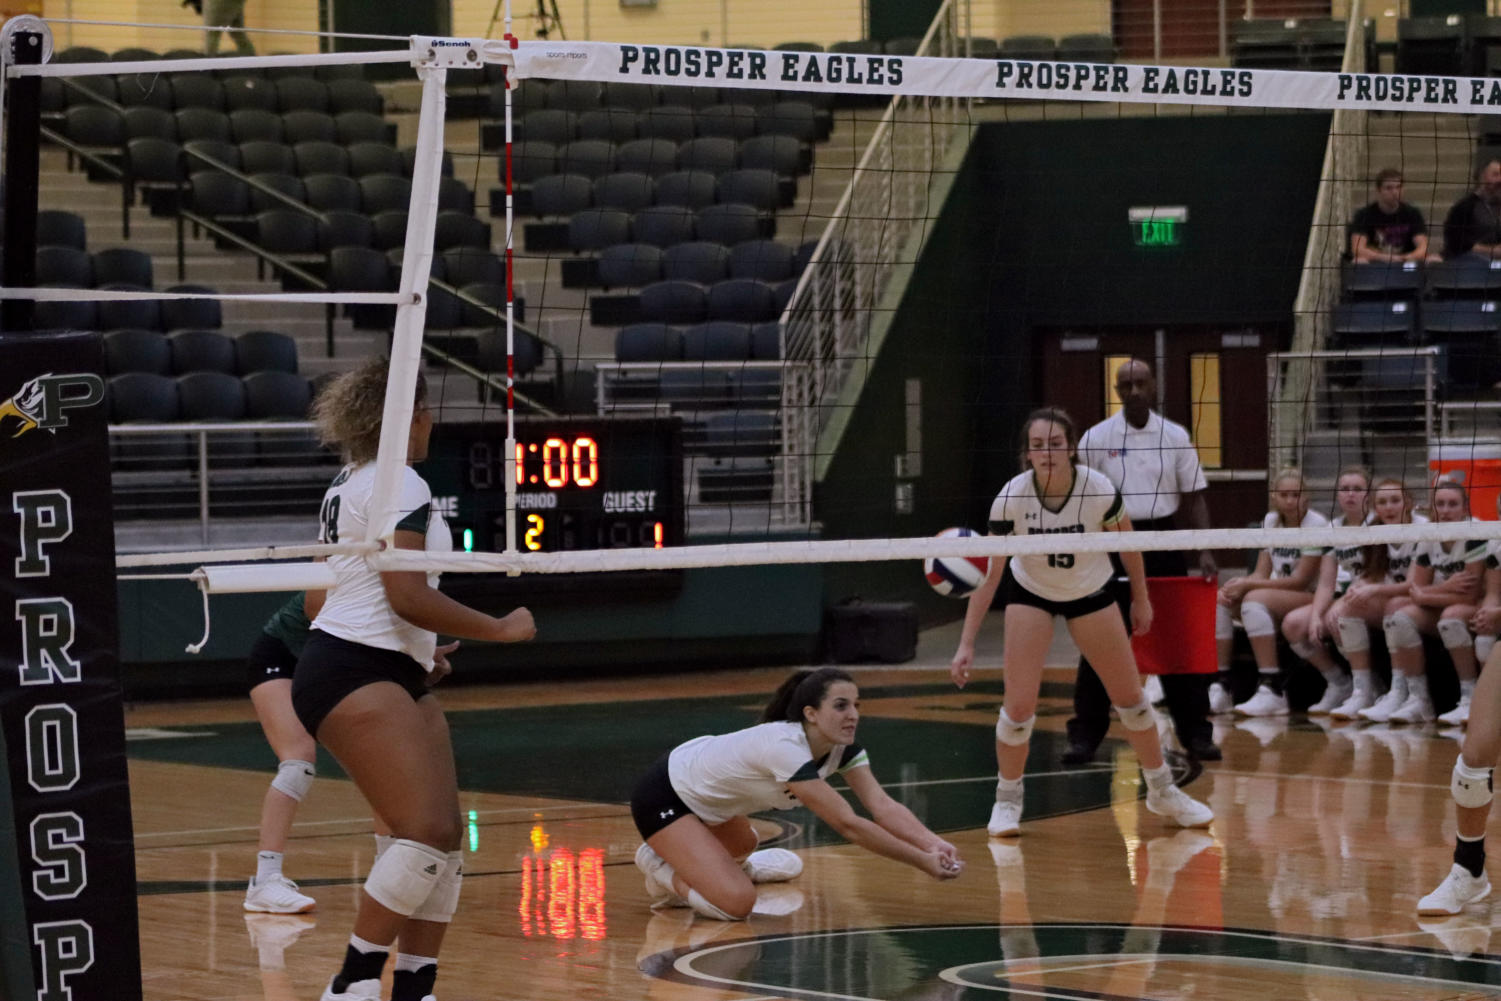 Samantha+Jacobs%2C+No.+4%2C+dives+for+a+ball+in+the+home+match+against+Denton+Guyer.+Jacobs+is+a+junior+and+in+her+third+year+on+the+varsity+volleyball+team.+She+recently+committed+to+the+University+of+Alabama+to+play+at+the+colligate+level.+